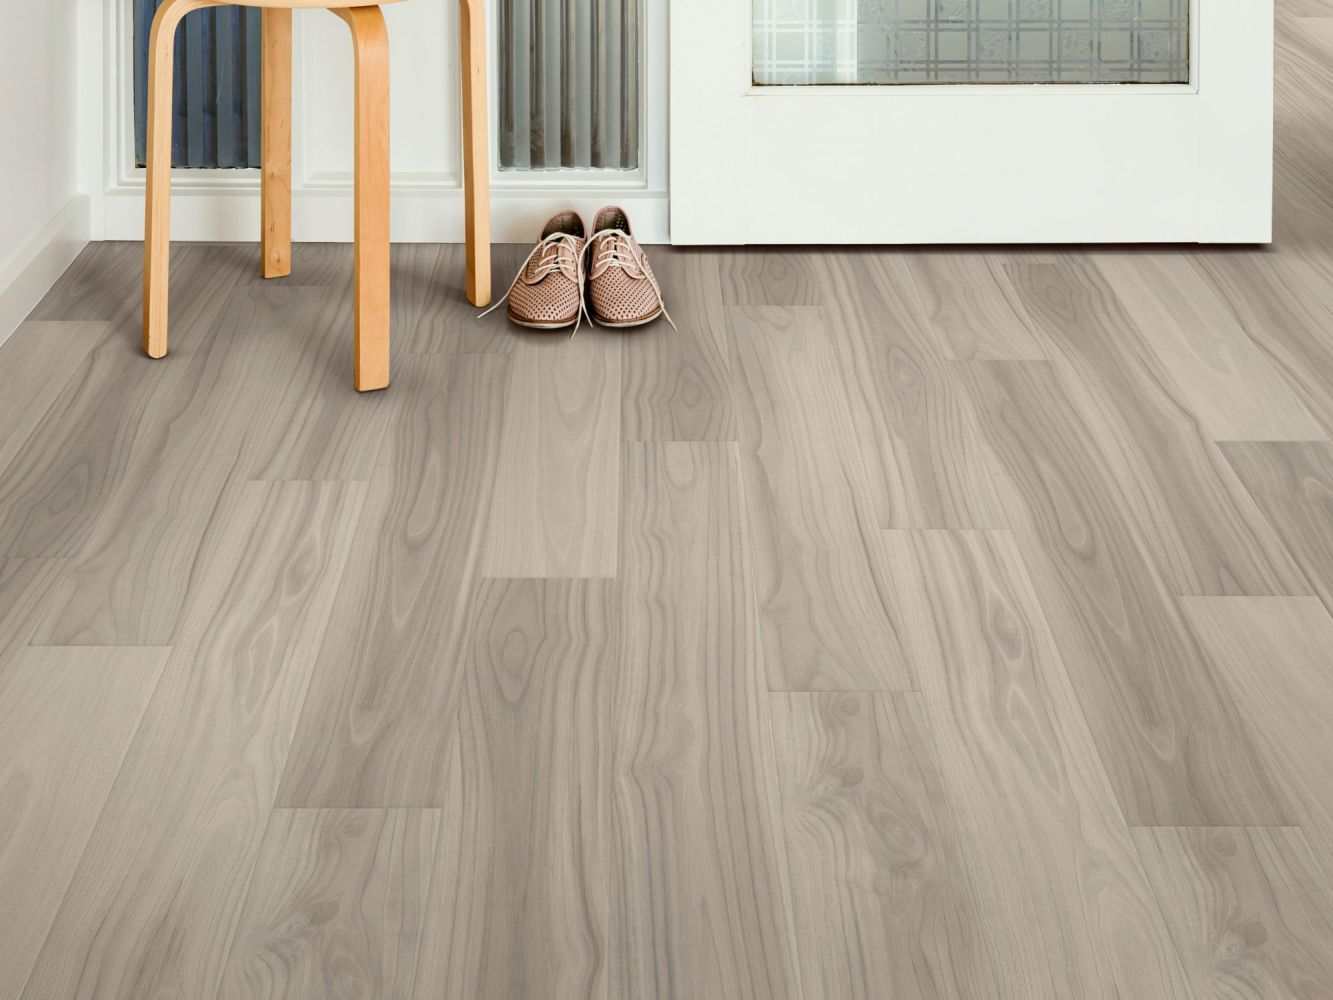 Shaw Floors Resilient Residential Pantheon Hd+ Natural Bevel Smoke 05130_1051V